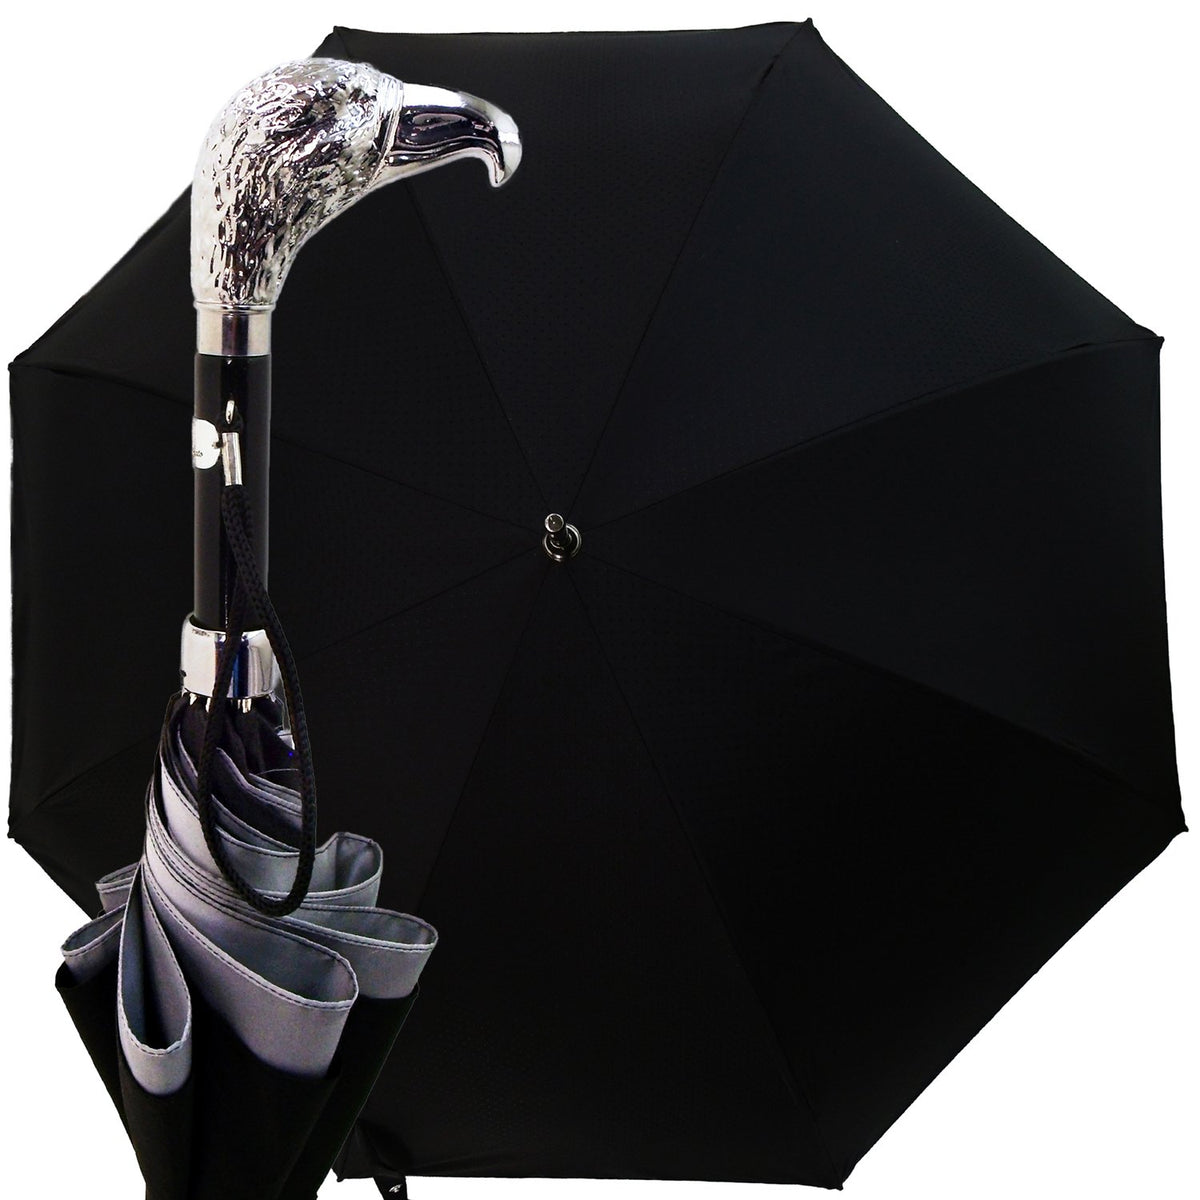 BLACK DOUBLE CLOTH MEN'S UMBRELLA